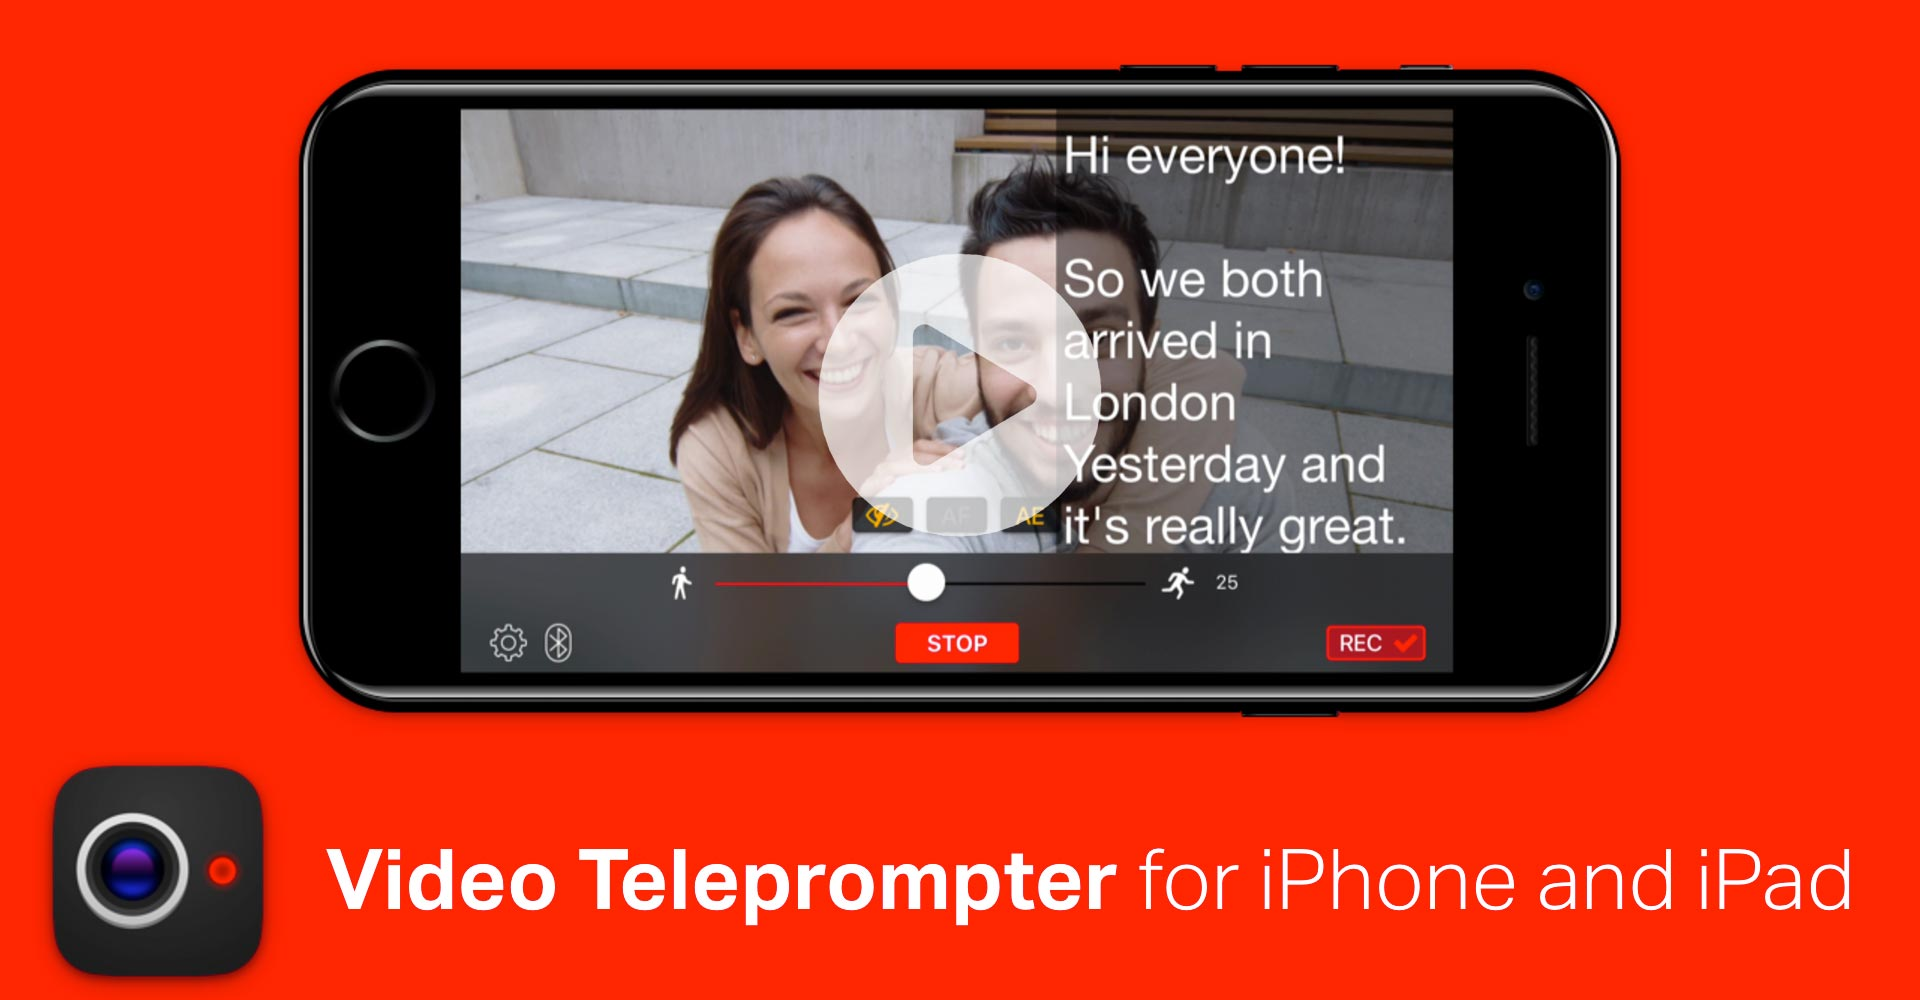 Video Teleprompter for iPhone and iPad - @mwender